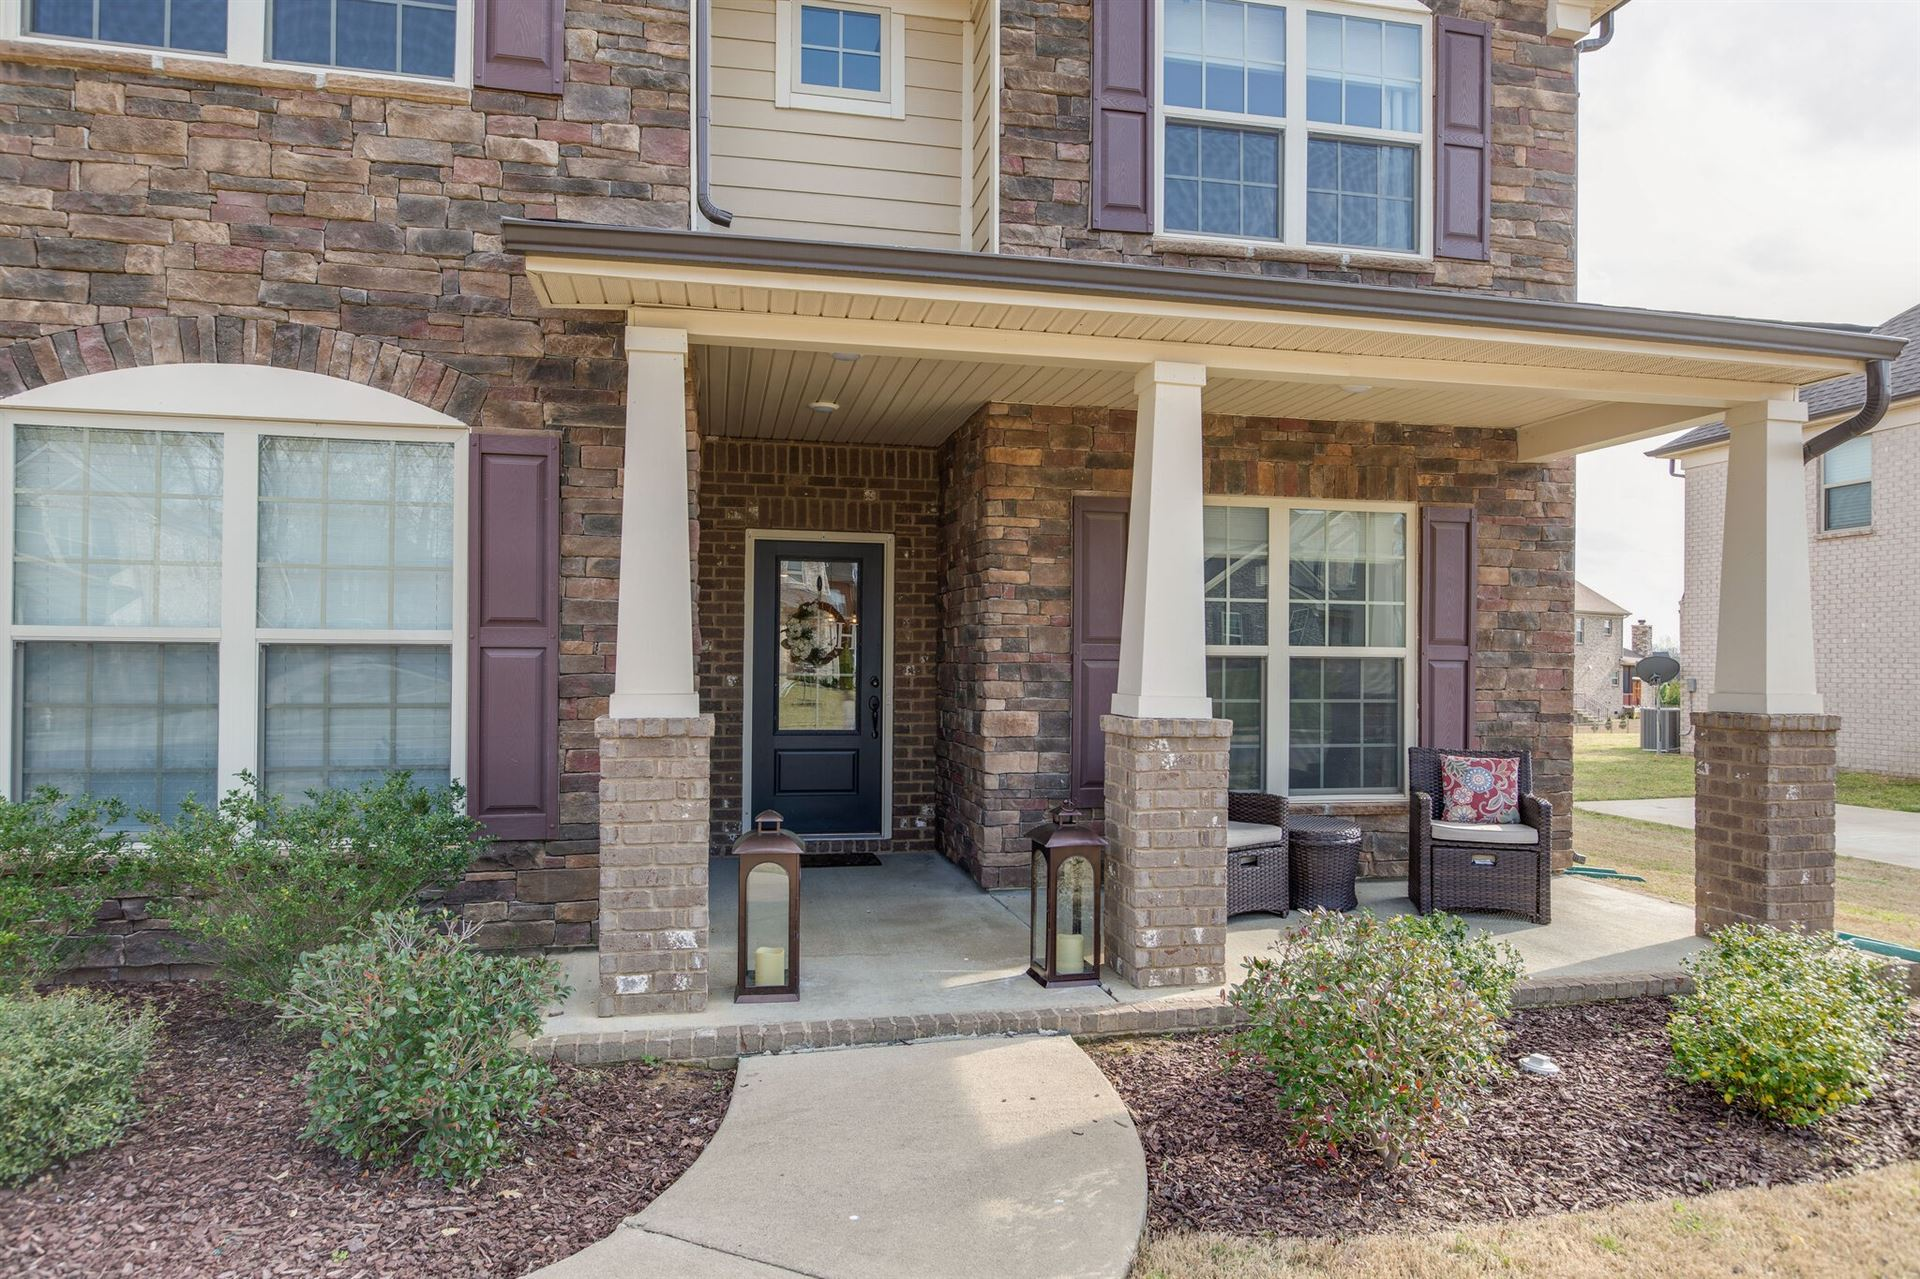 Photo of 1027 Maleventum Way, Spring Hill, TN 37174 (MLS # 2243454)